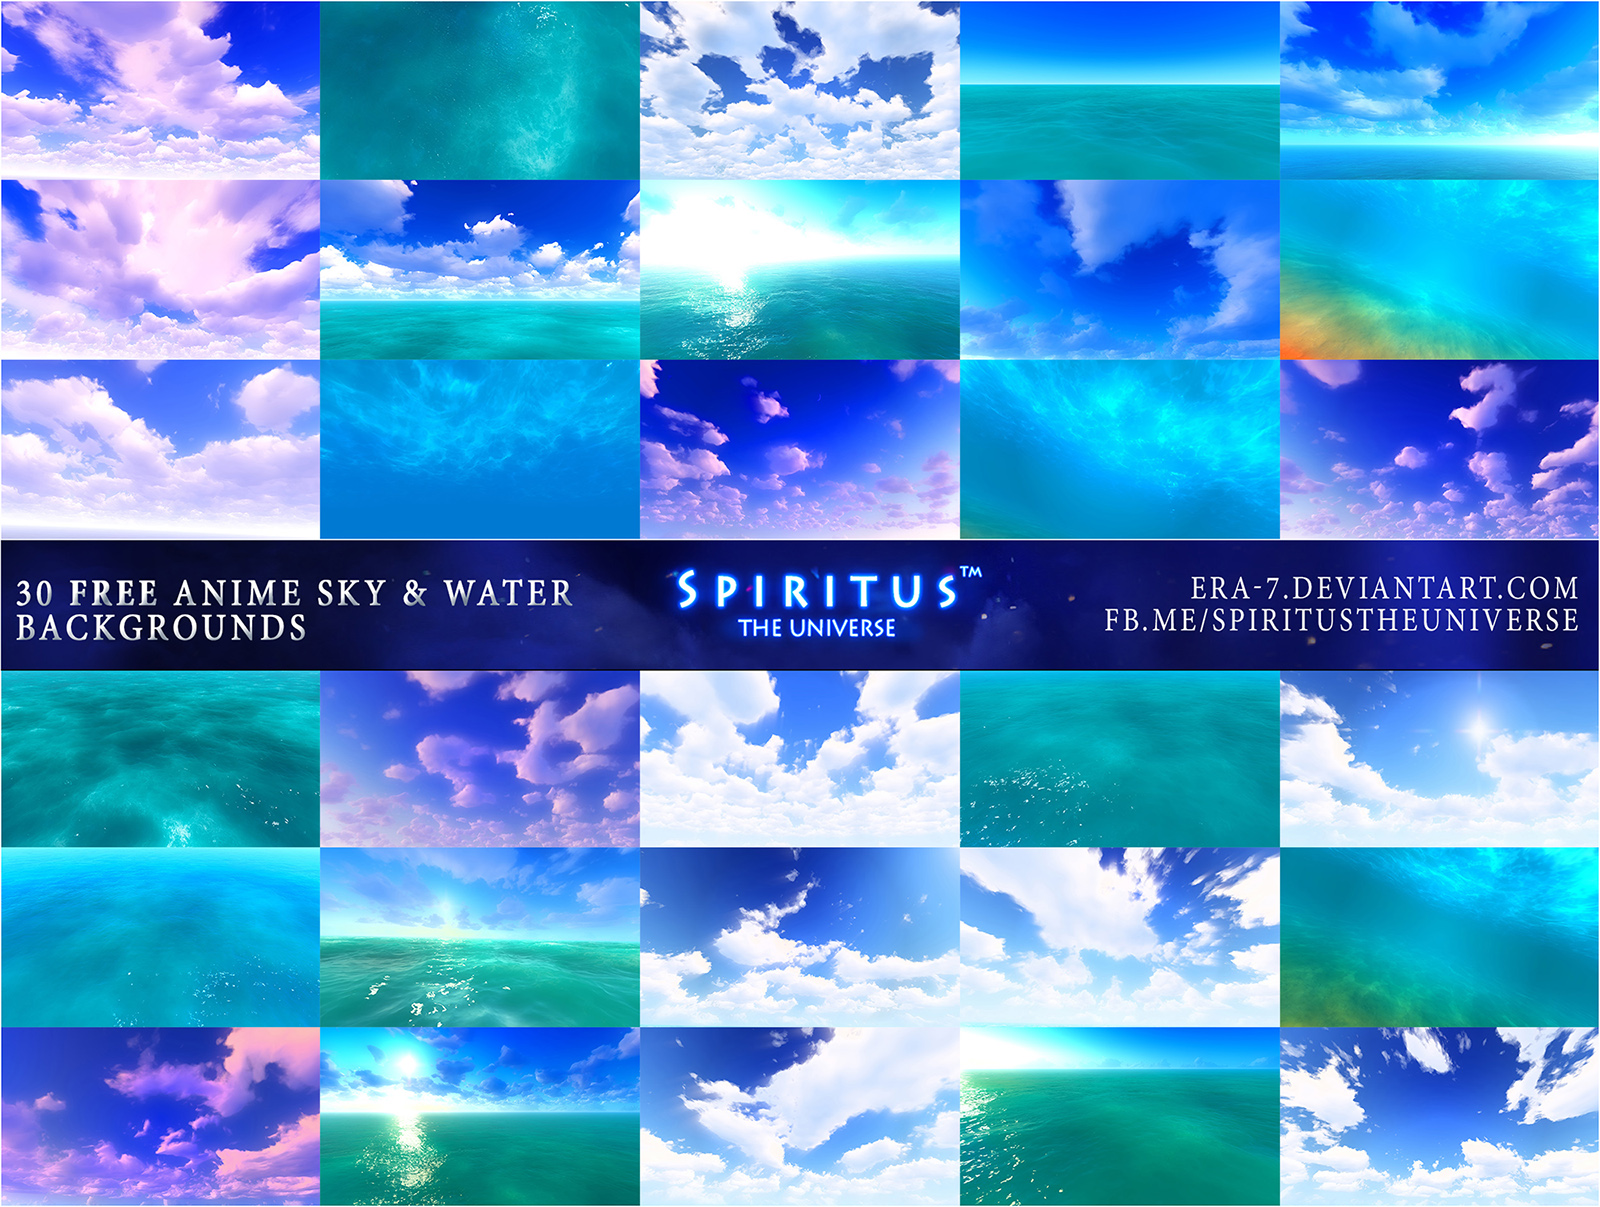 30 FREE ANIME SKY AND WATER BACKGROUNDS - PACK 28